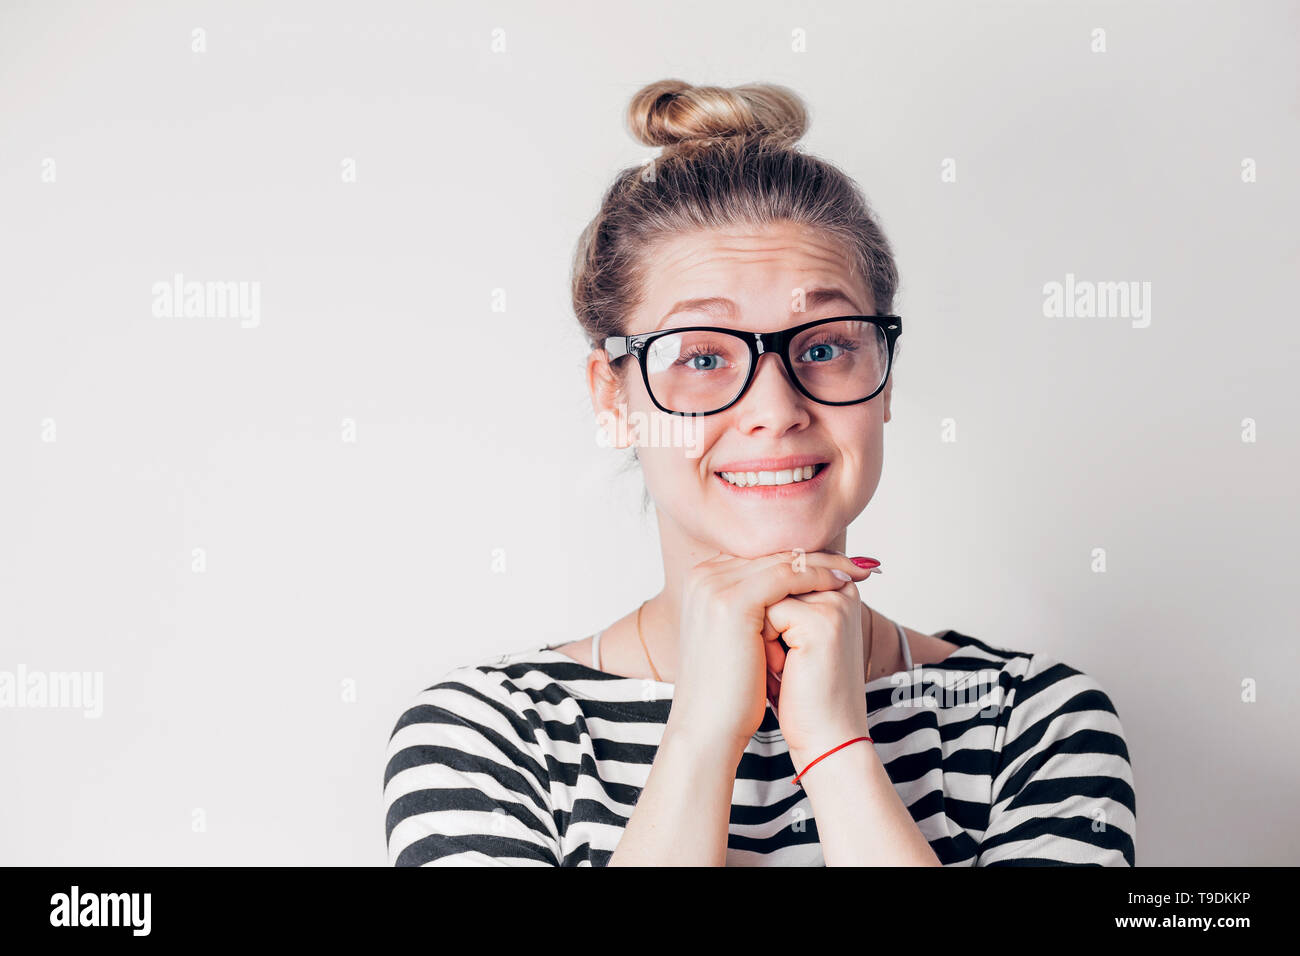 1177cdc4fd96 Beautiful smiling woman with clean skin, natural makeup, white teeth  wearing black-rimmed